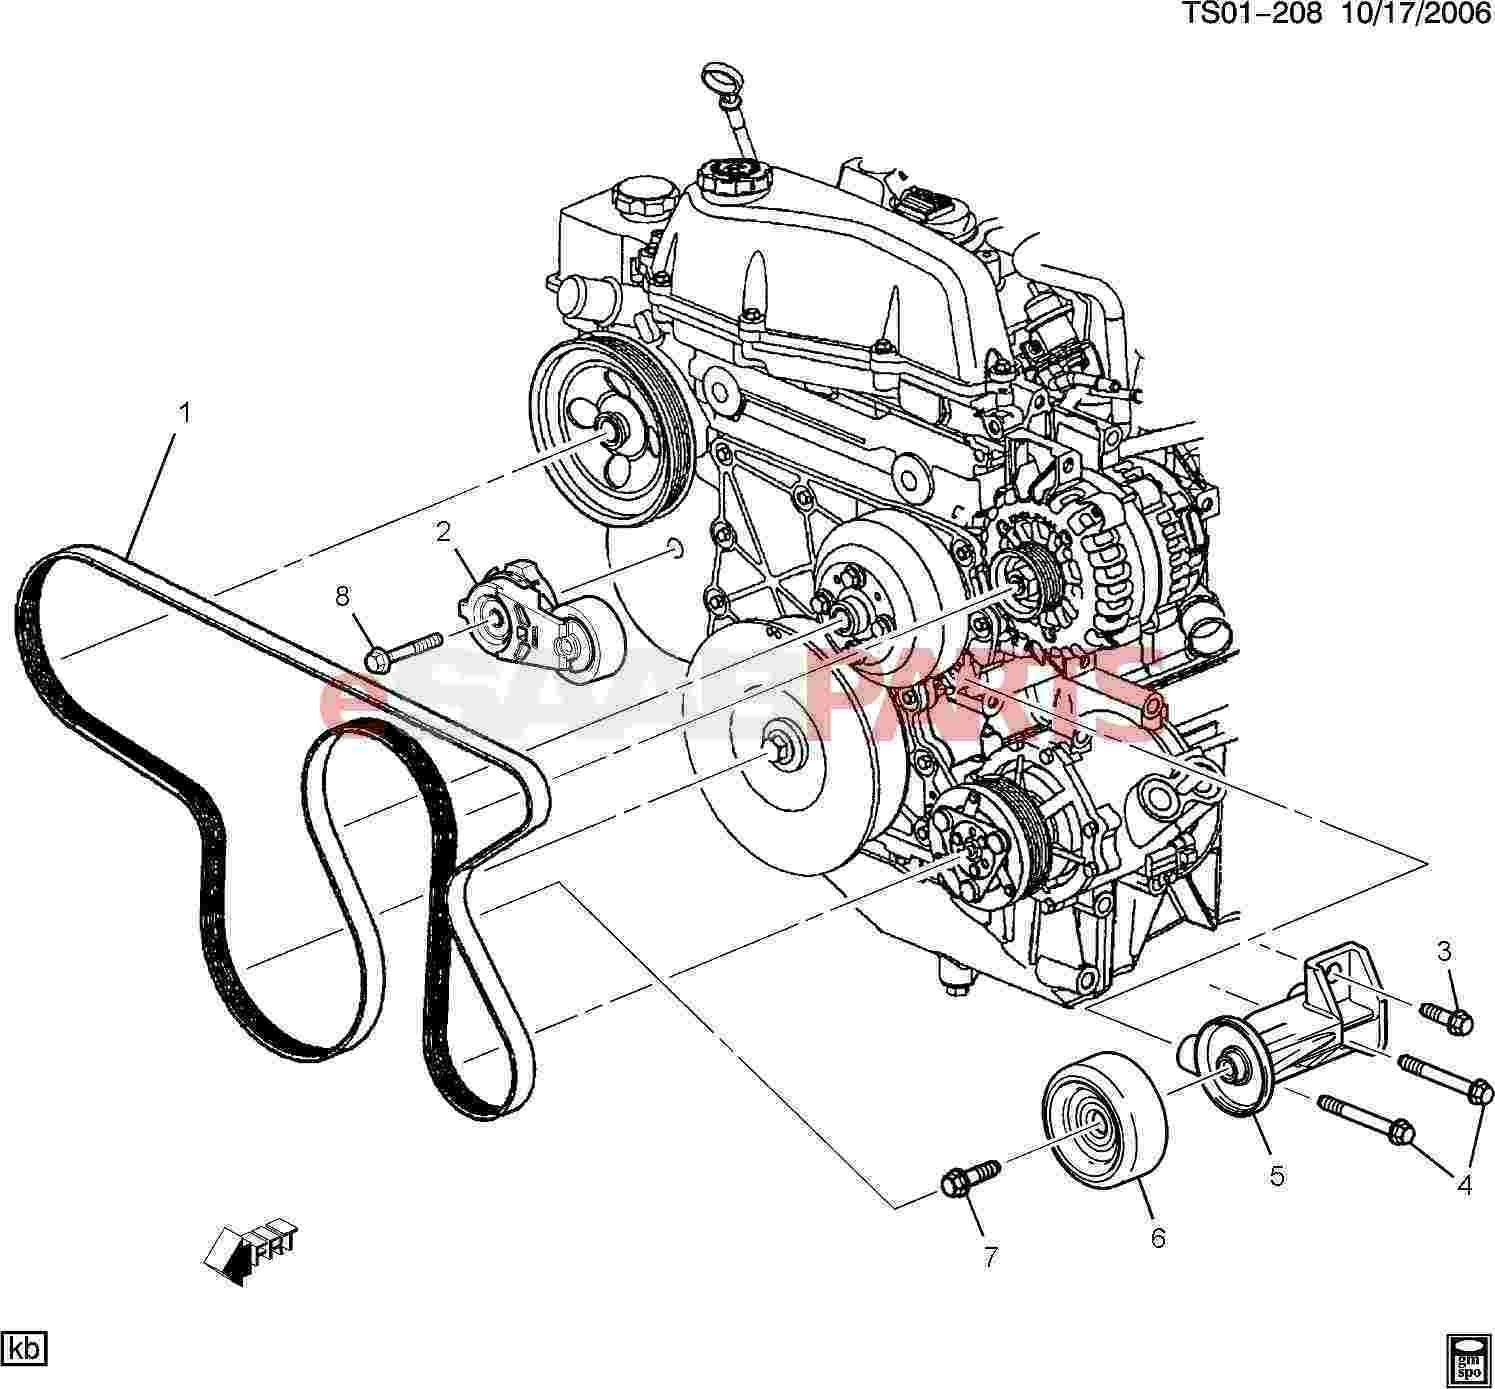 Ford 2 3 Engine Diagram 2003 Chevy Trailblazer Engine Diagram Of Ford 2 3 Engine Diagram 2008 Mazda 3 Engine Diagram Diagram Mazda 6 Engine Diagram – My